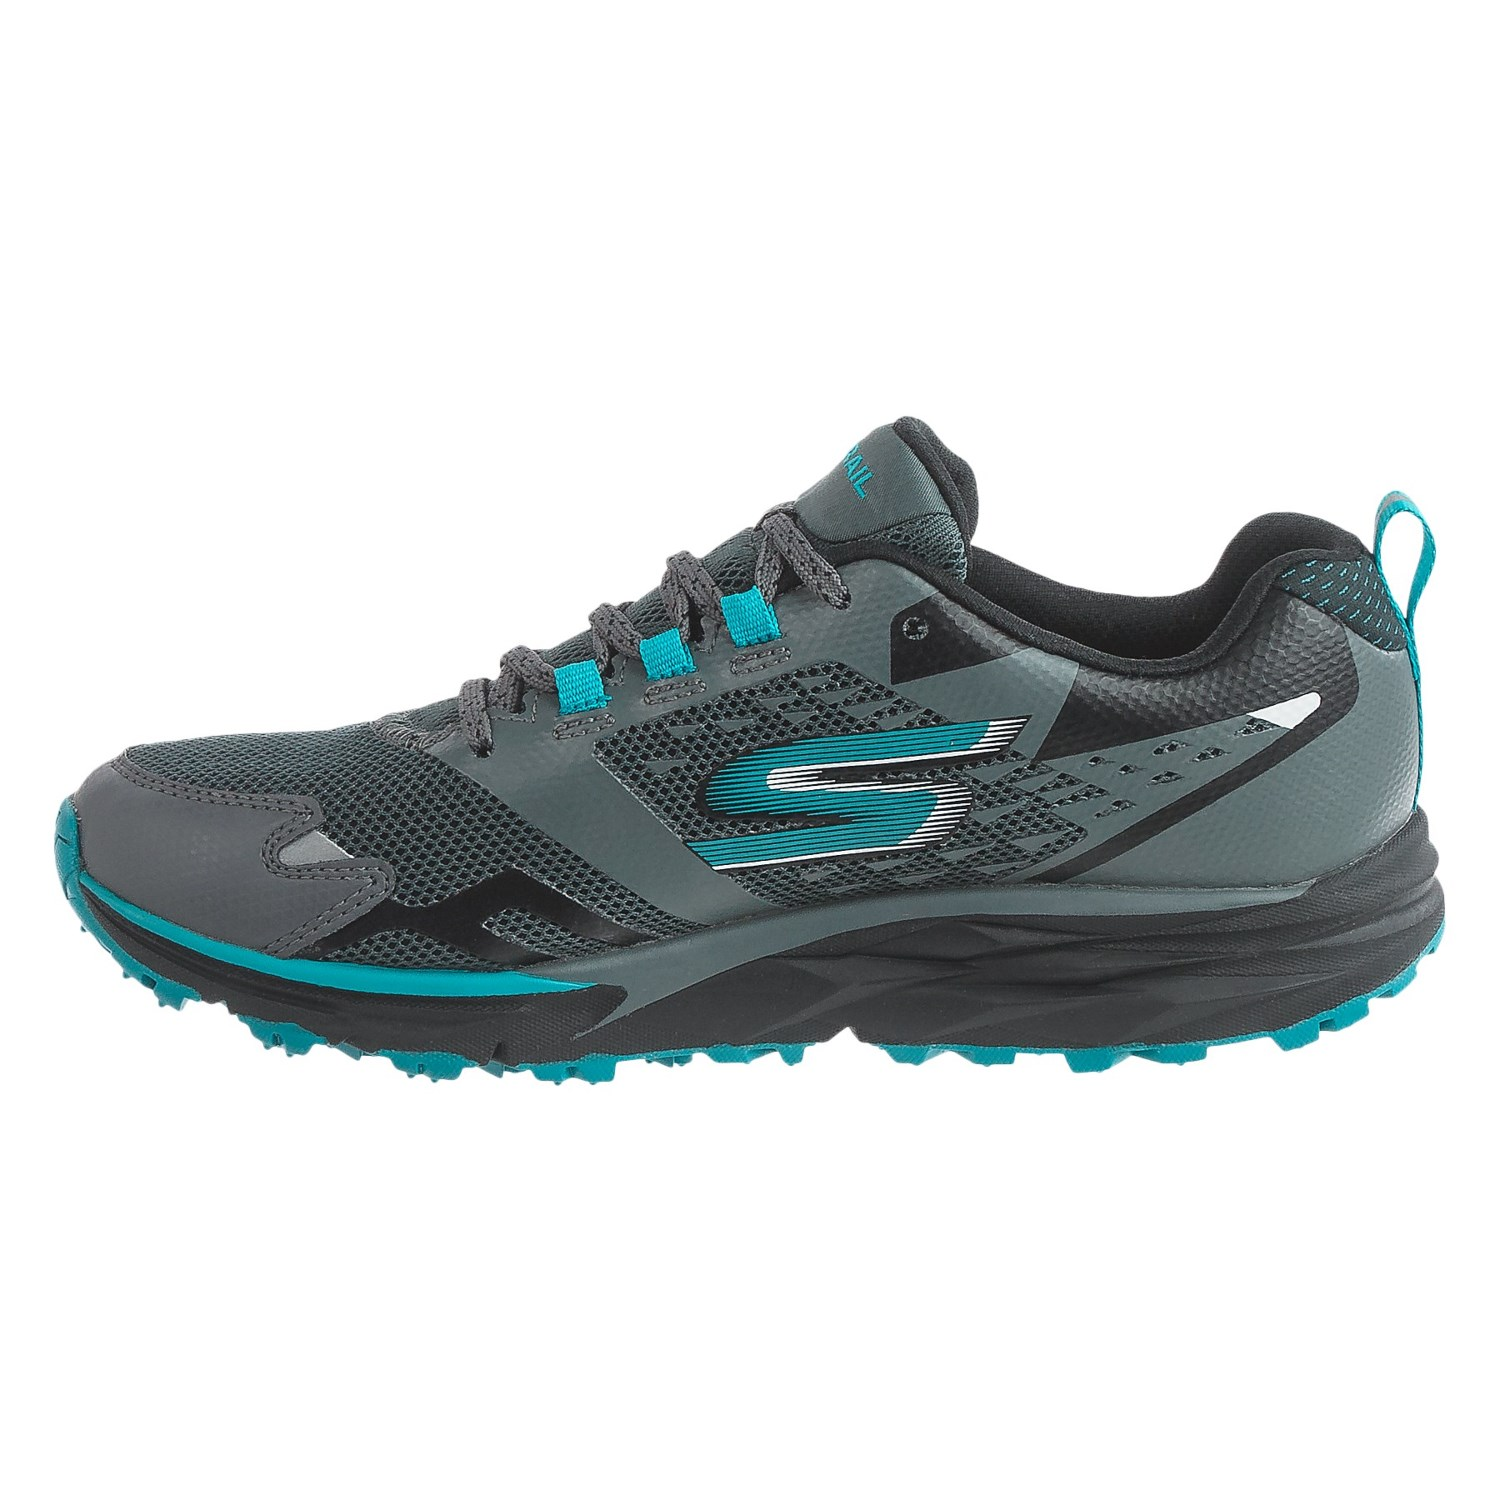 sketchers hiking boots. skechers gotrail adventure trail running shoes - waterproof (for women) sketchers hiking boots